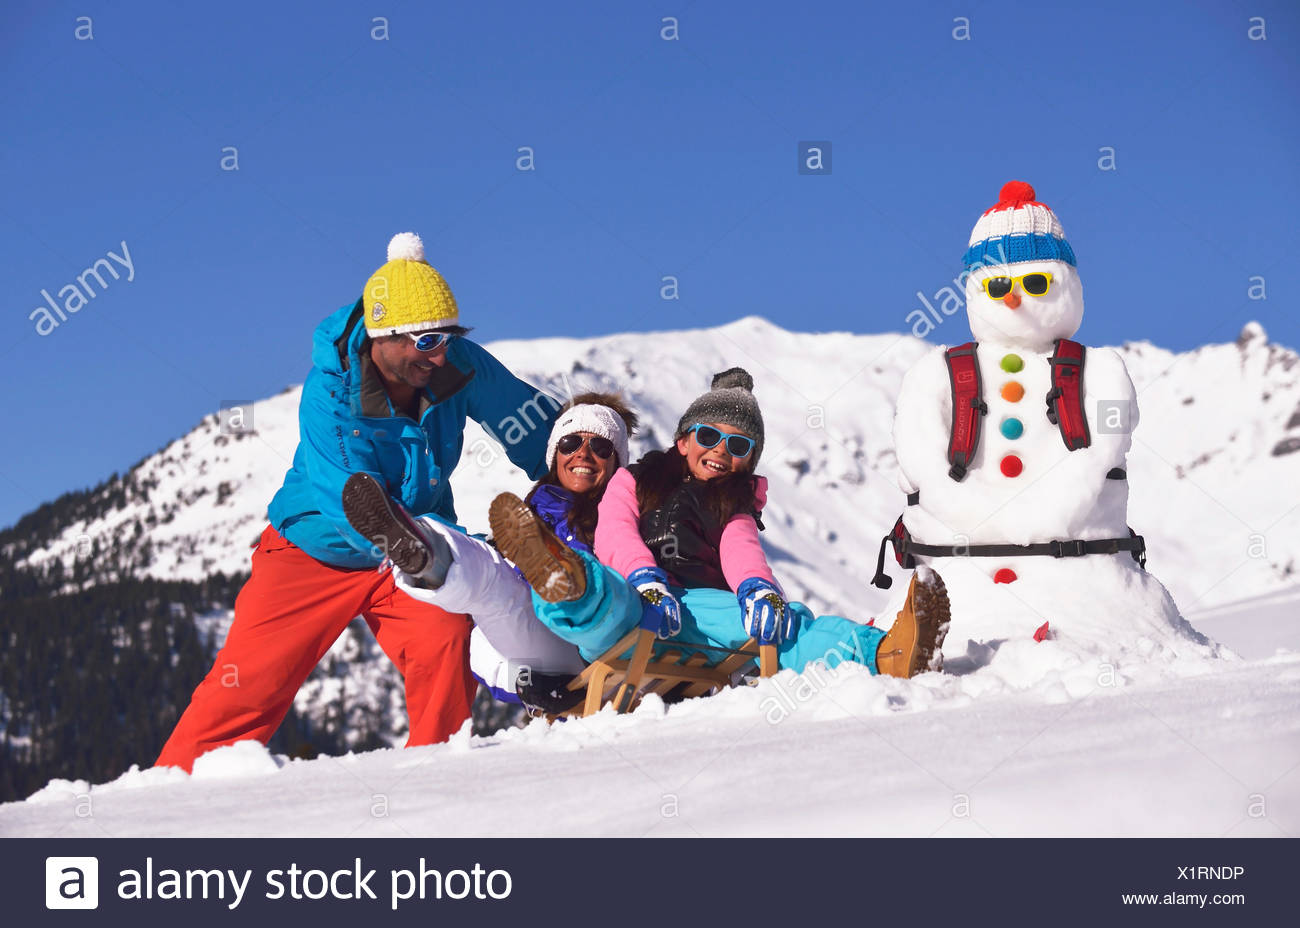 Family at winter sports, France - Stock Image